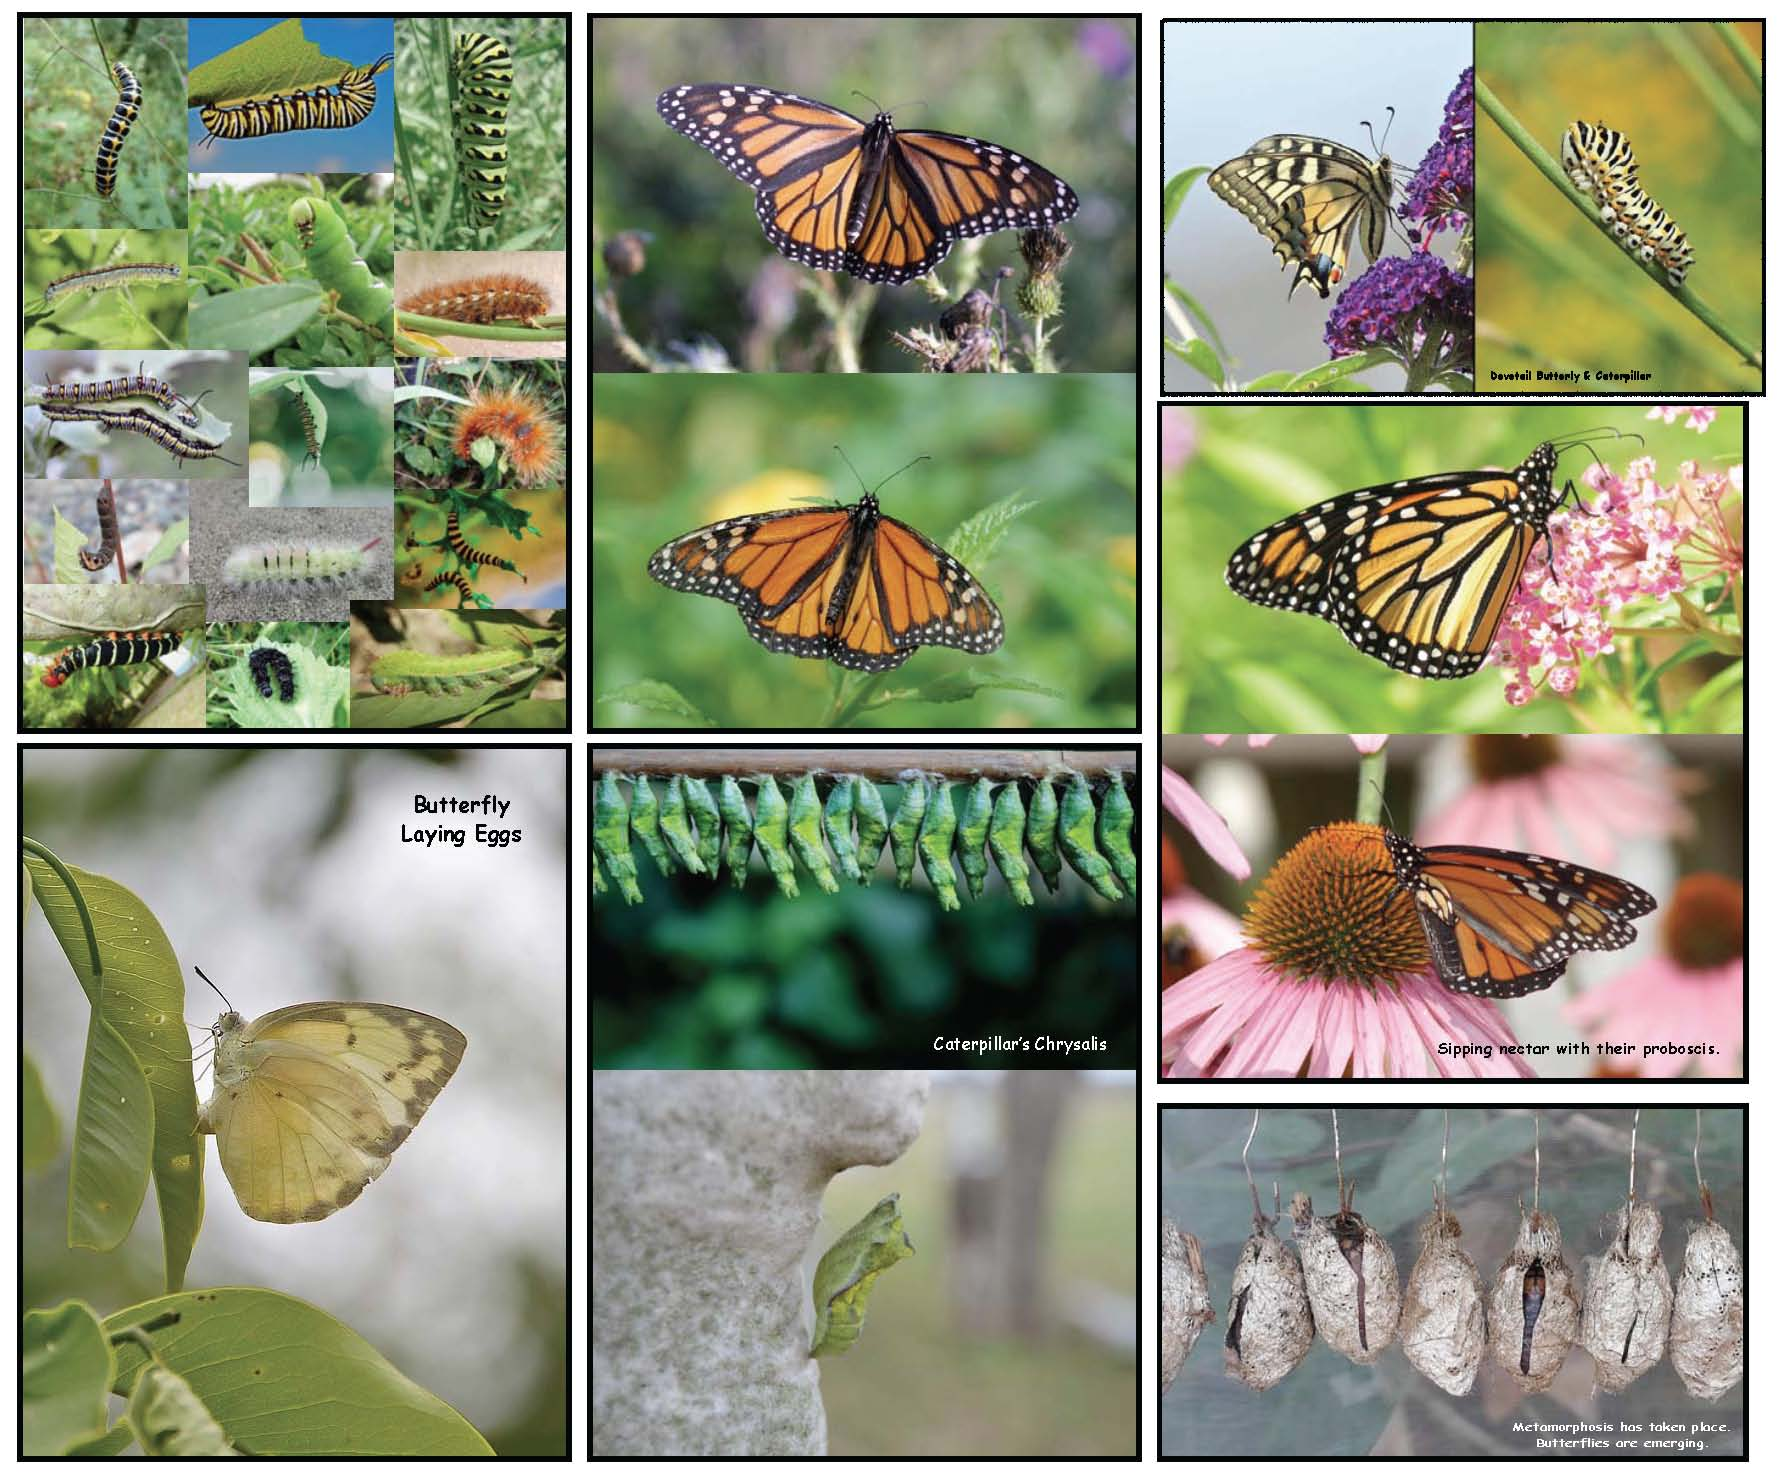 life cycle of a butterfly activities, life cycle of a butterfly crafts, the very hungry caterpillar activities, photographs of real butterflies, photographs of caterpillars, he very hungry caterpillar crafts